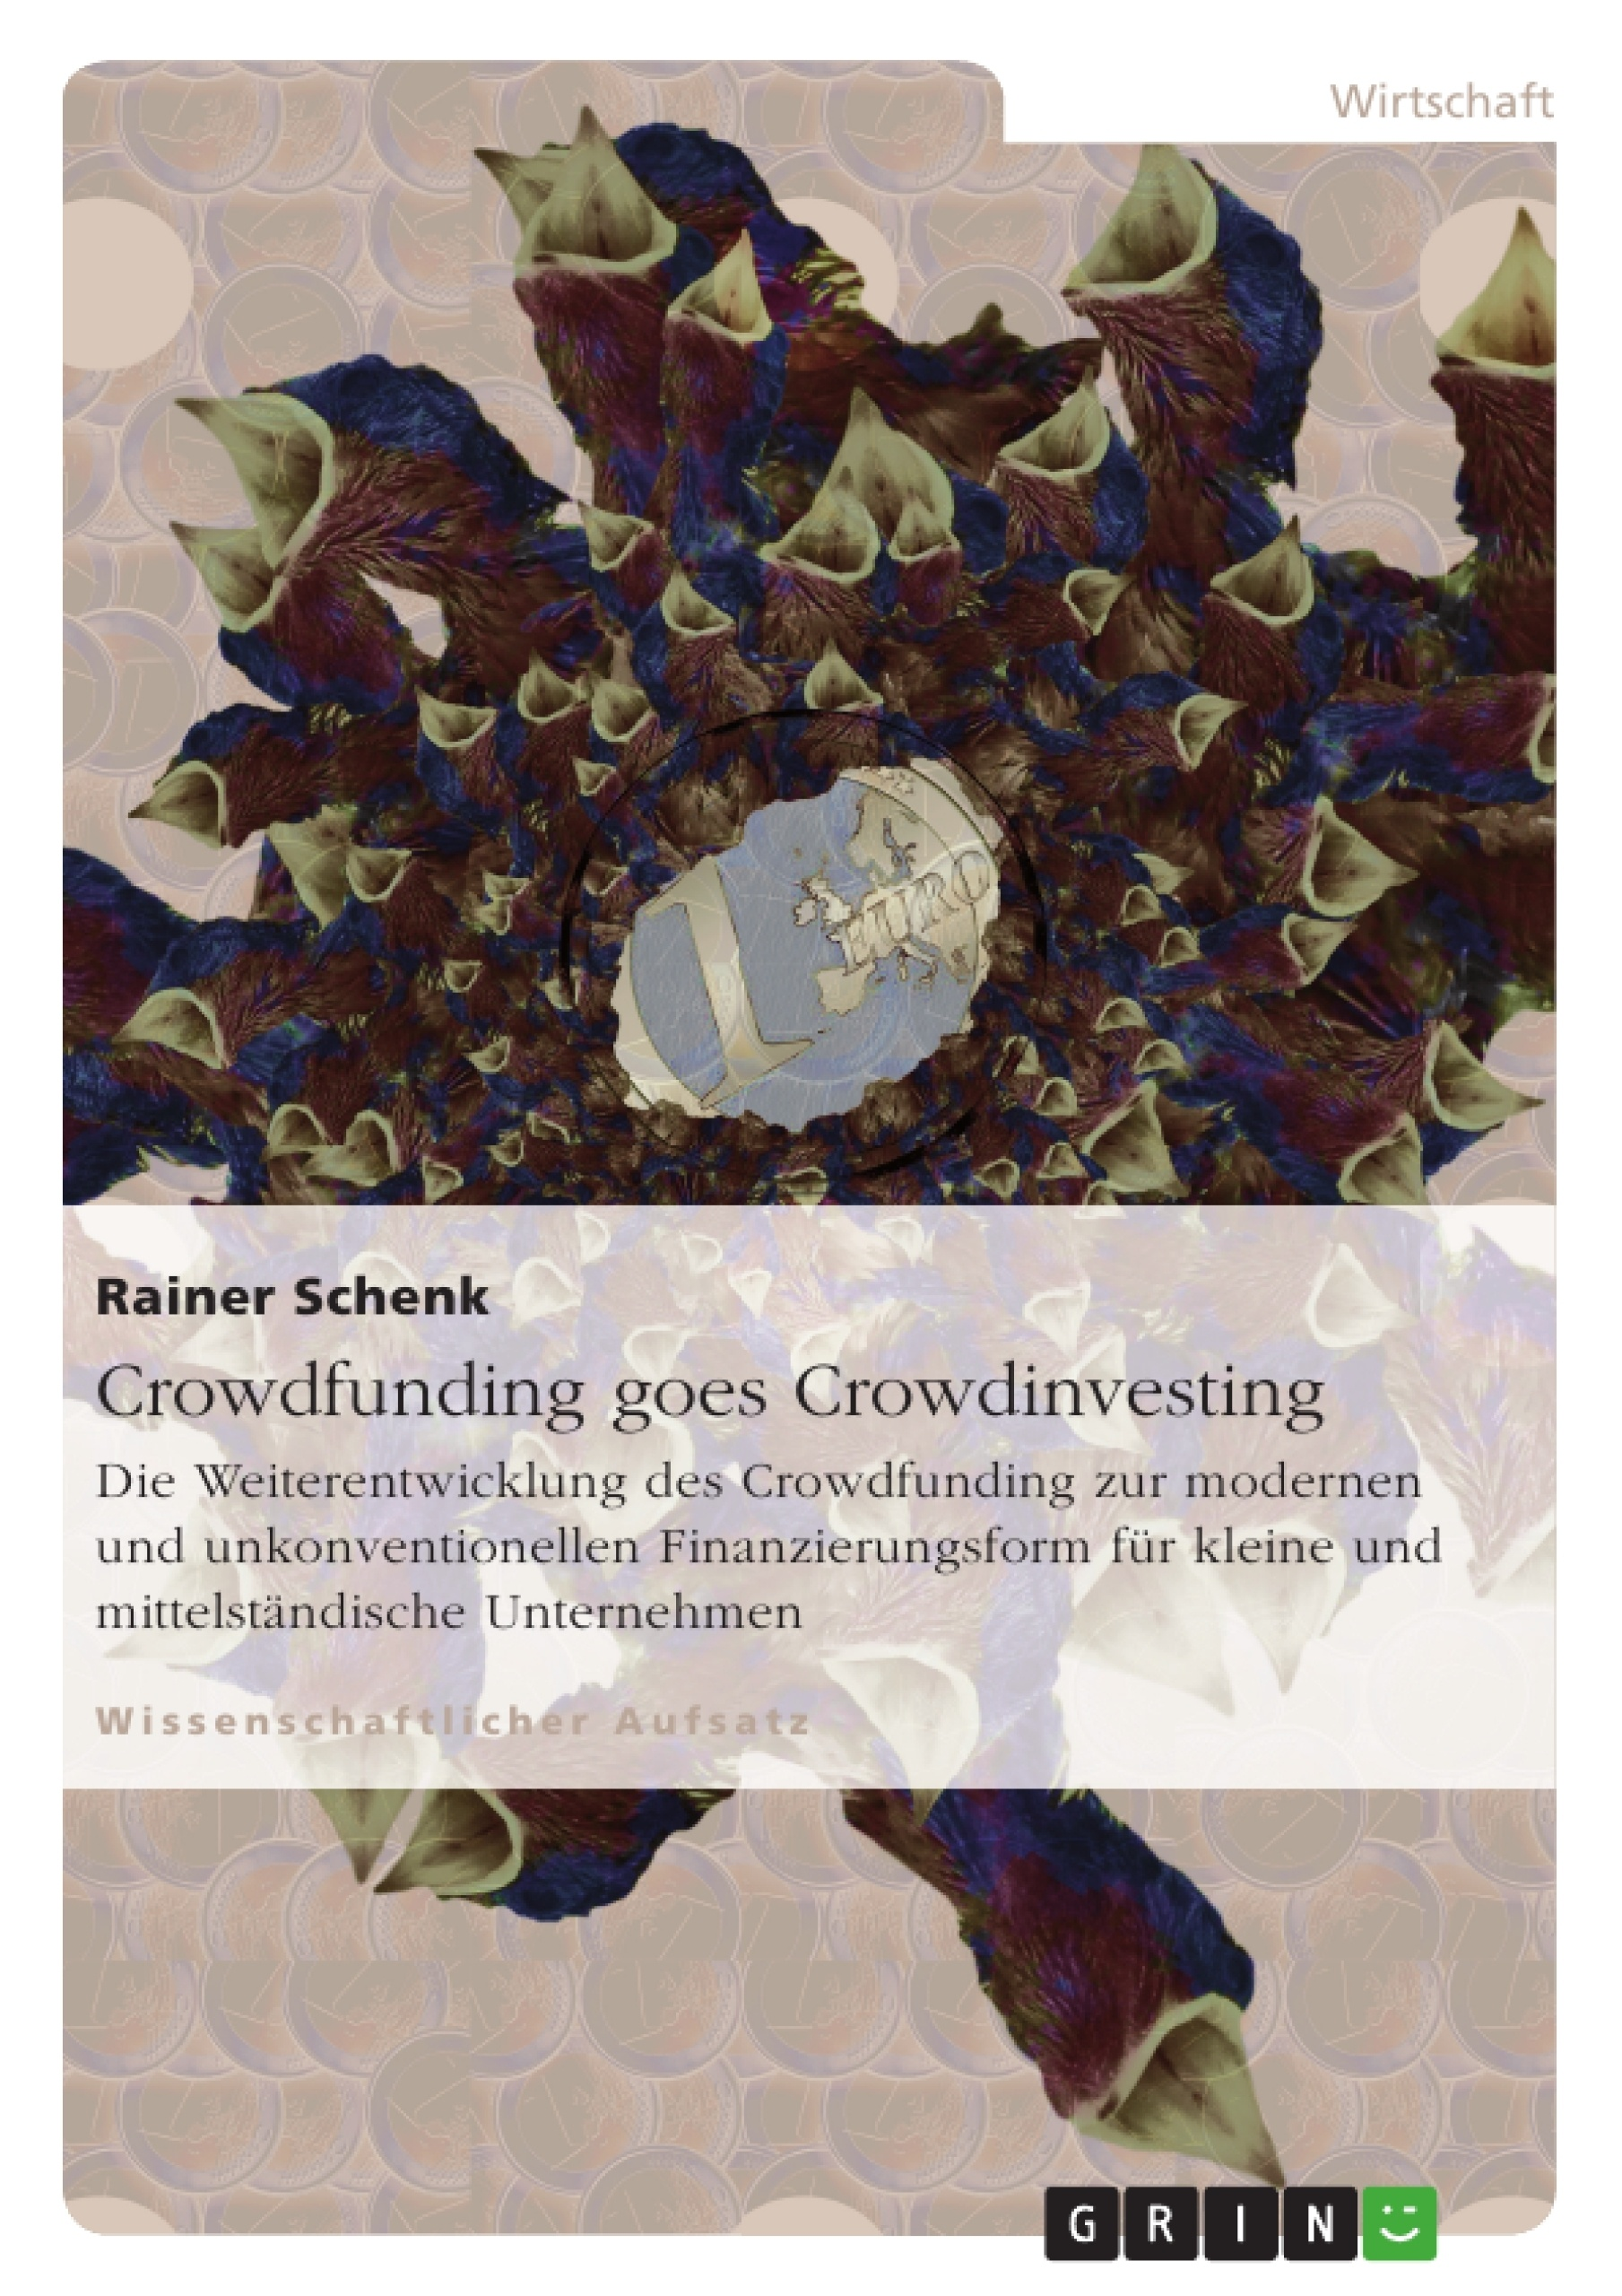 Titel: Crowdfunding goes Crowdinvesting